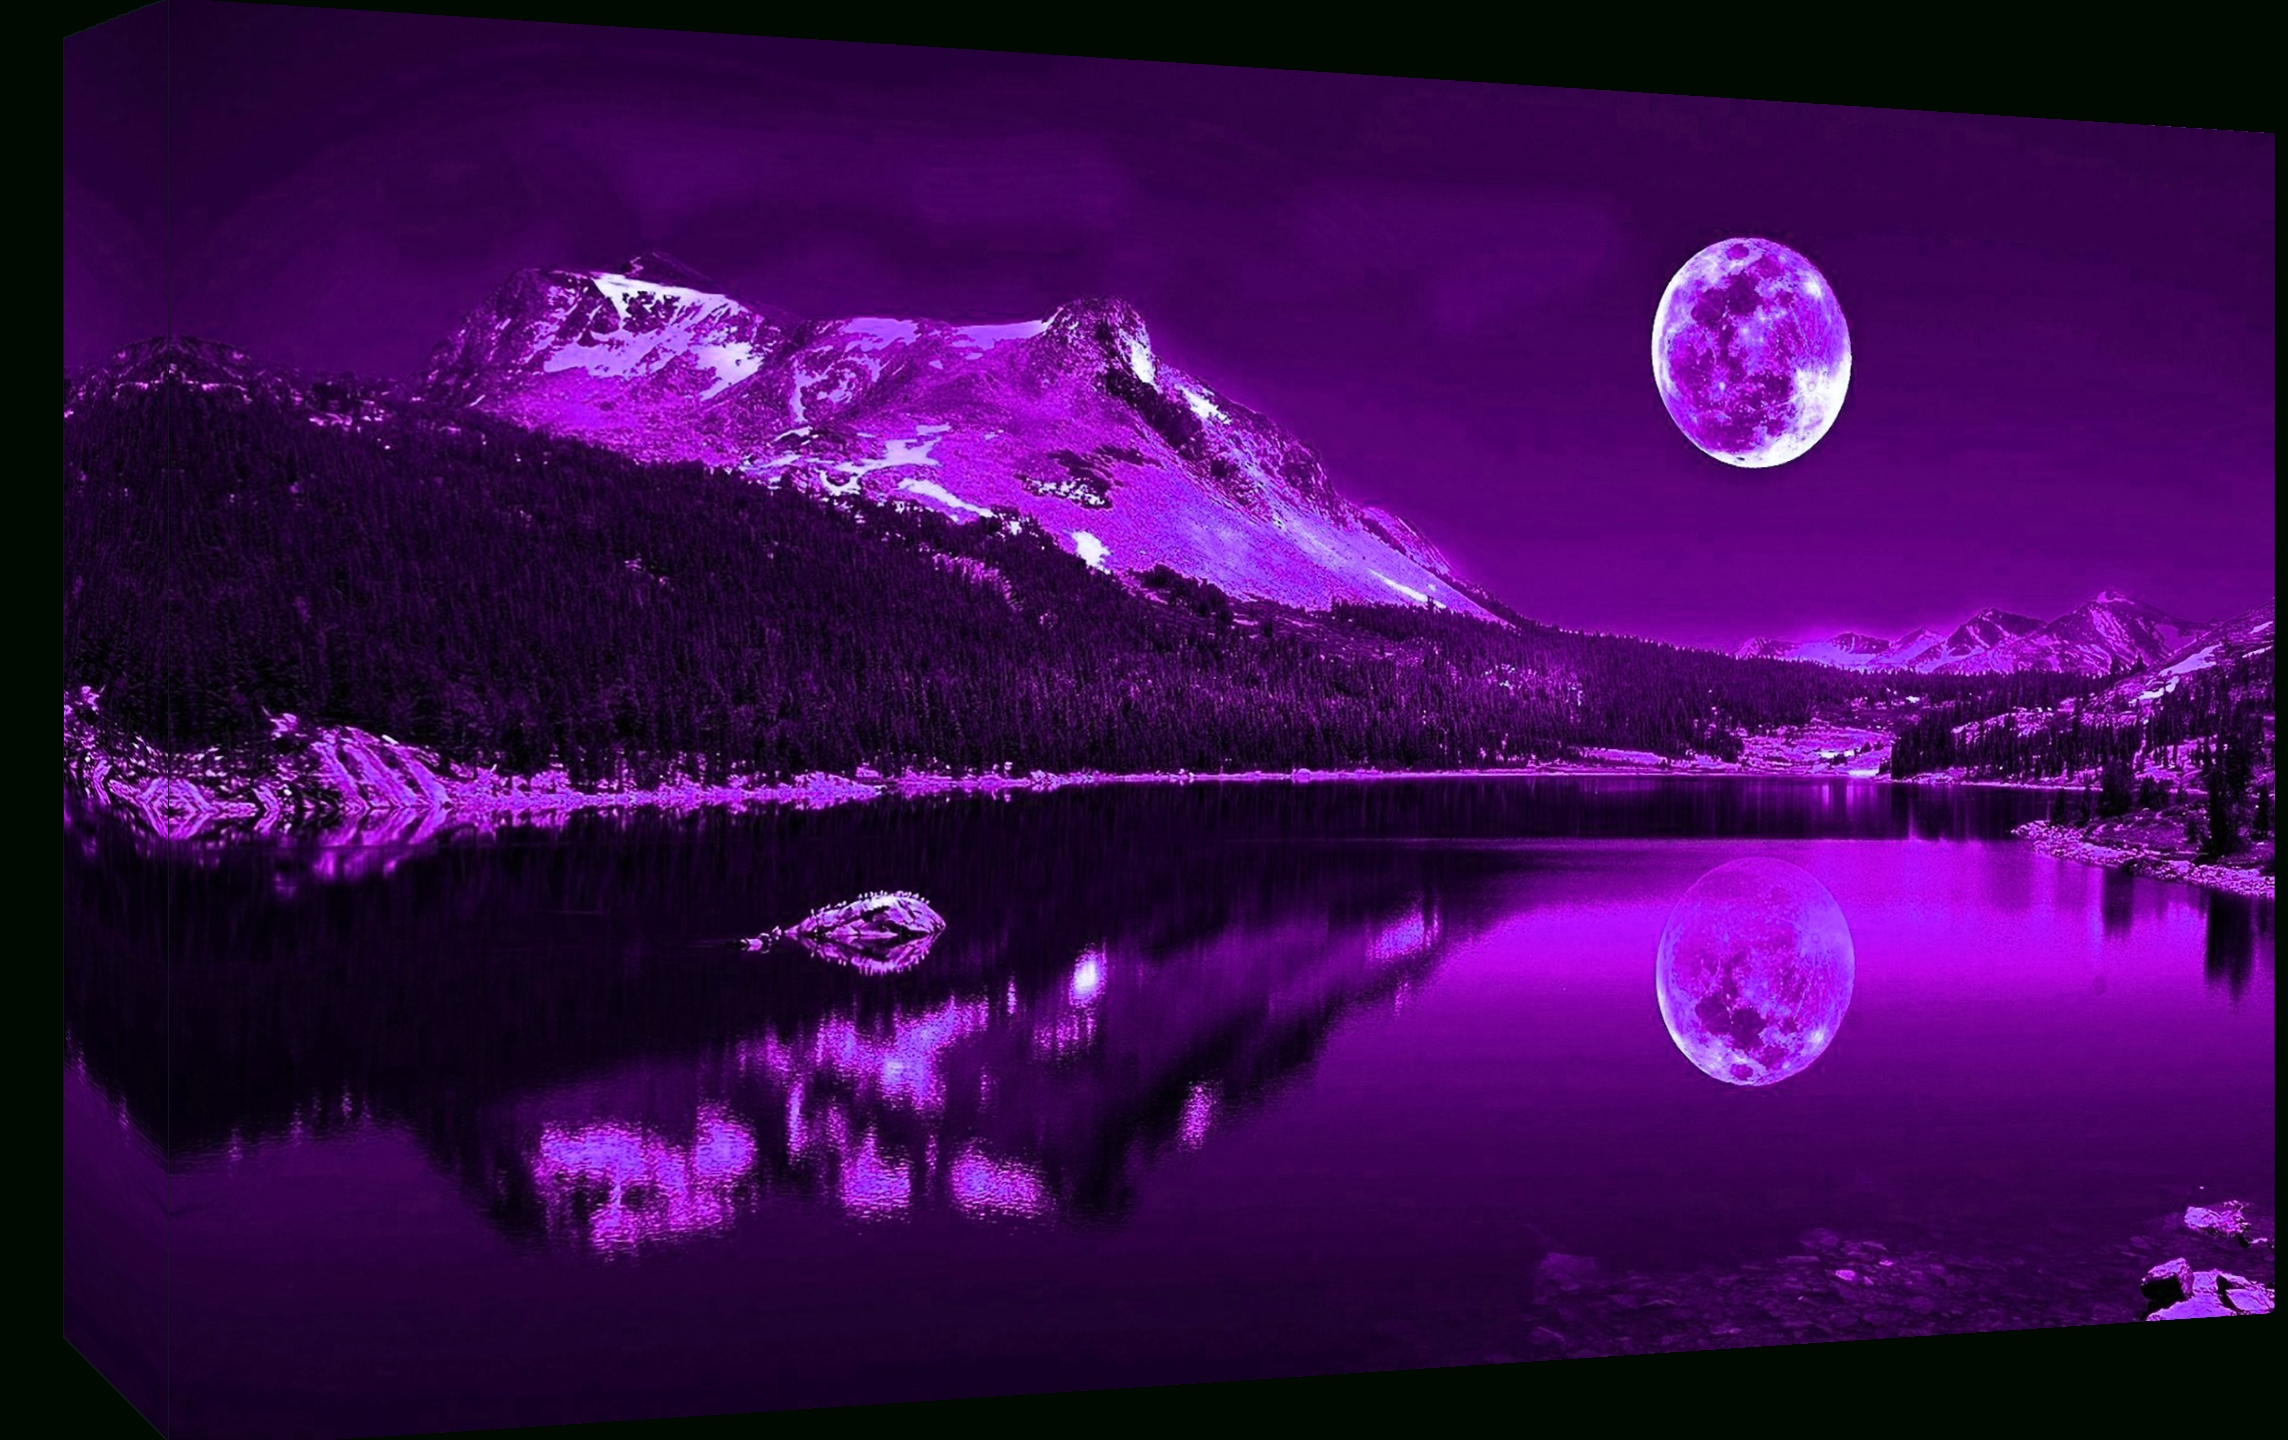 Purple Plum Moonlit Lake Cotton Canvas Wall Art Picture Print – A1 For Most Recent Purple Canvas Wall Art (View 8 of 20)